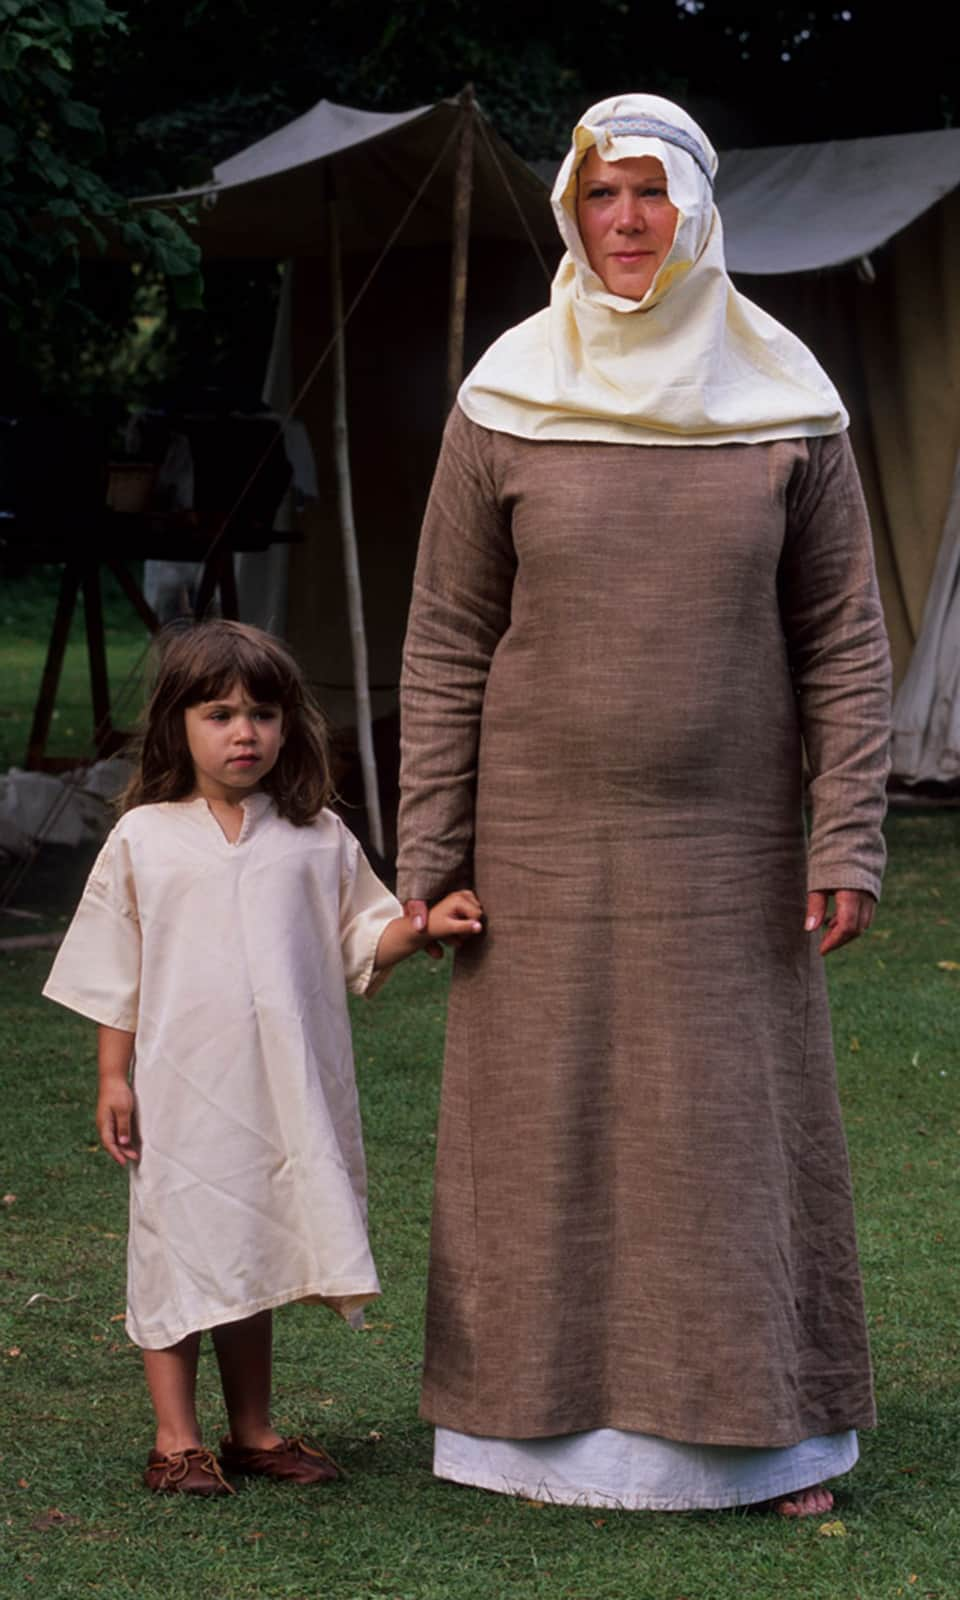 A simple dress worn by a Saxon woman and her daughter